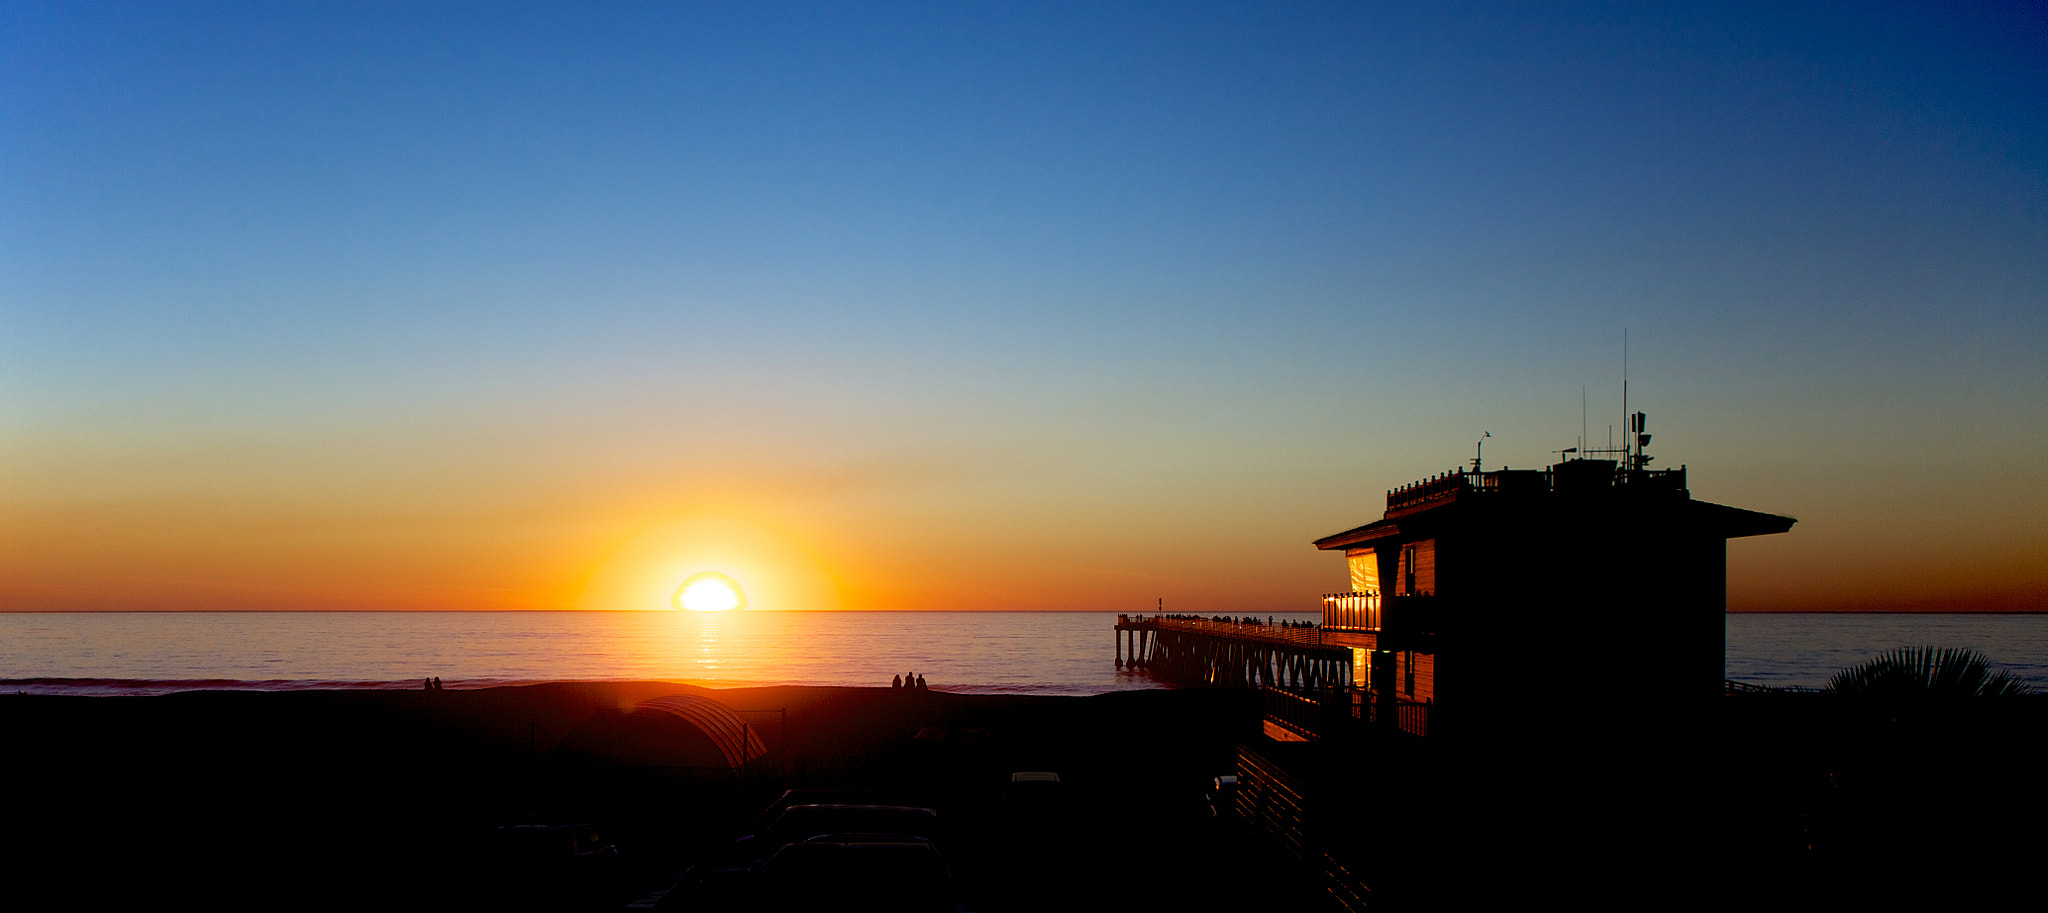 Photograph California Sunset by Craig Smith on 500px